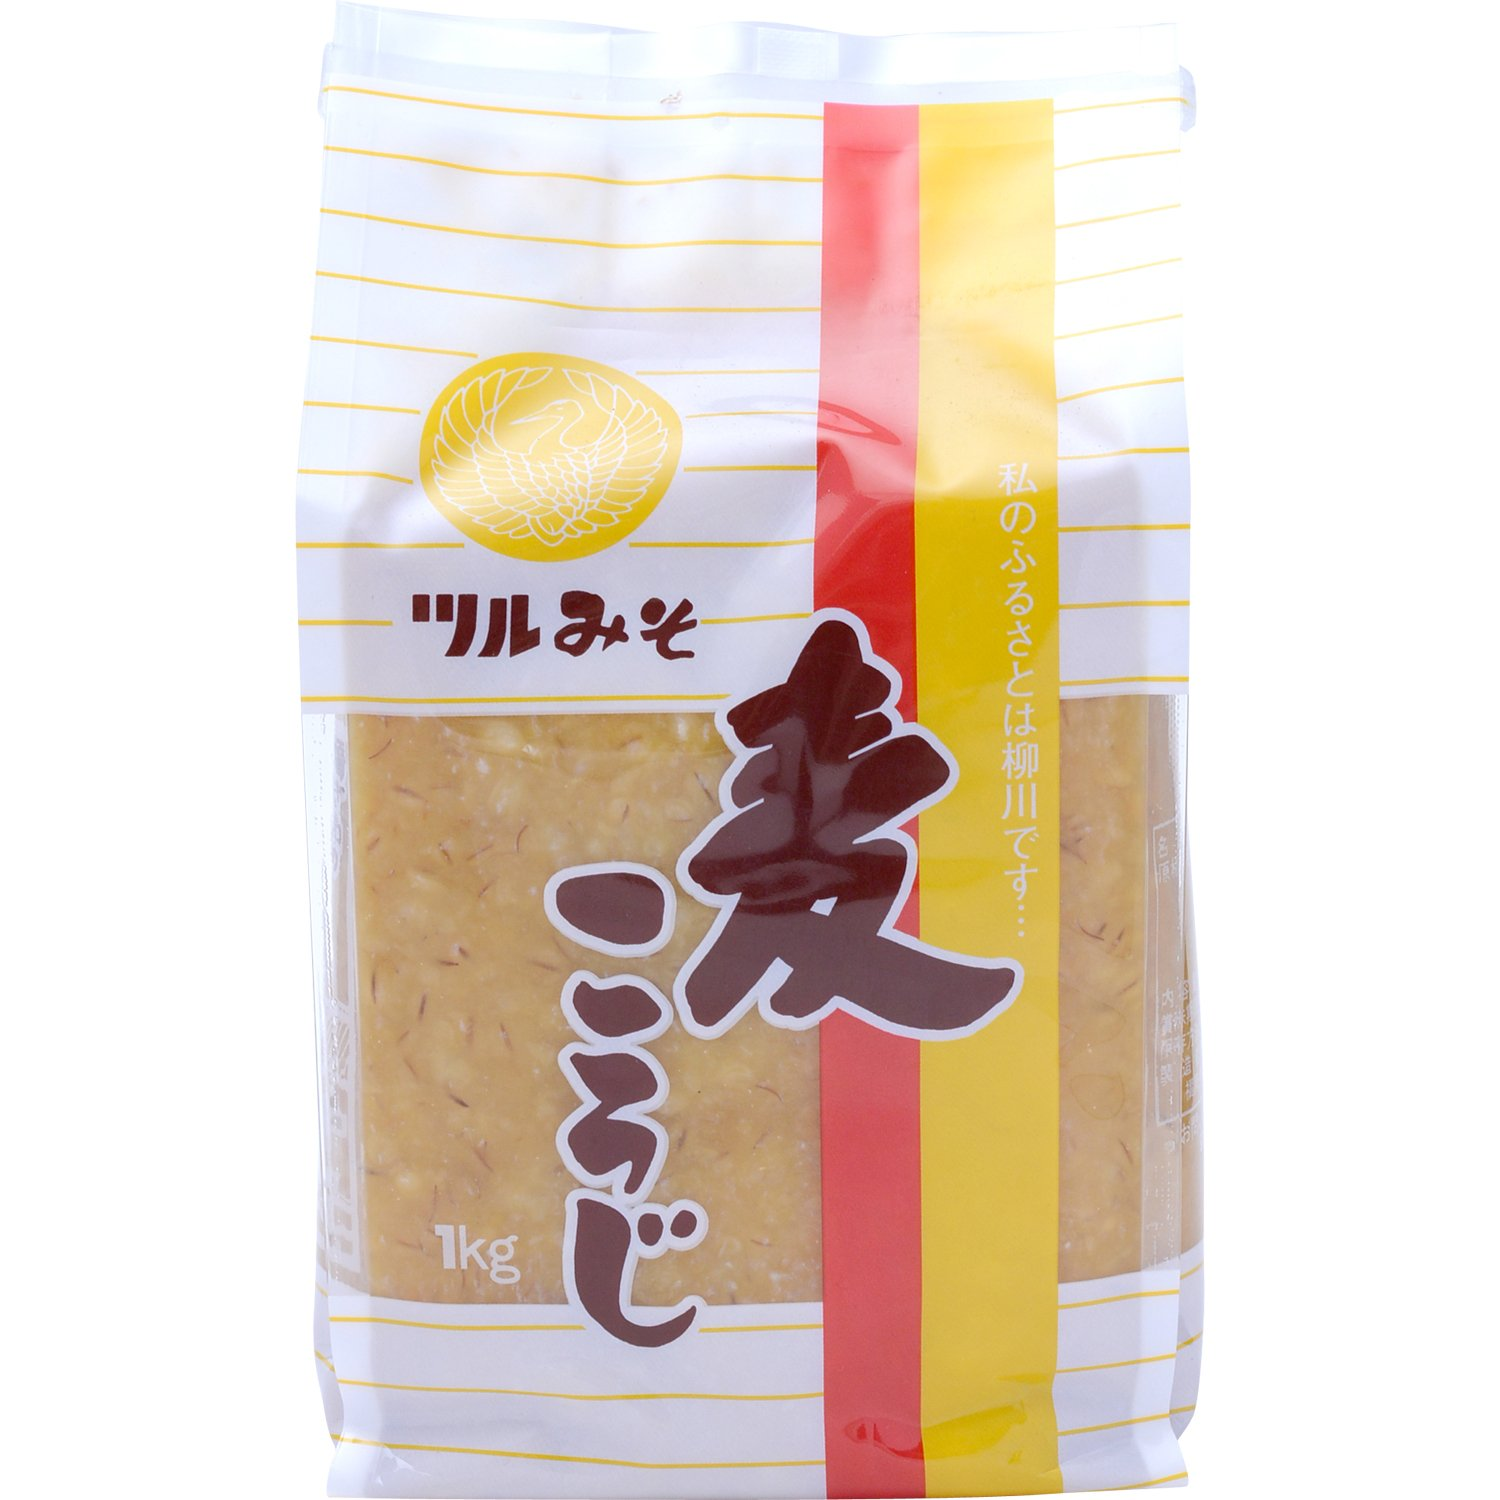 Cranes miso brewing Hakushu Challenge the lowest price Raleigh Mall of Japan wheat 1kg construction